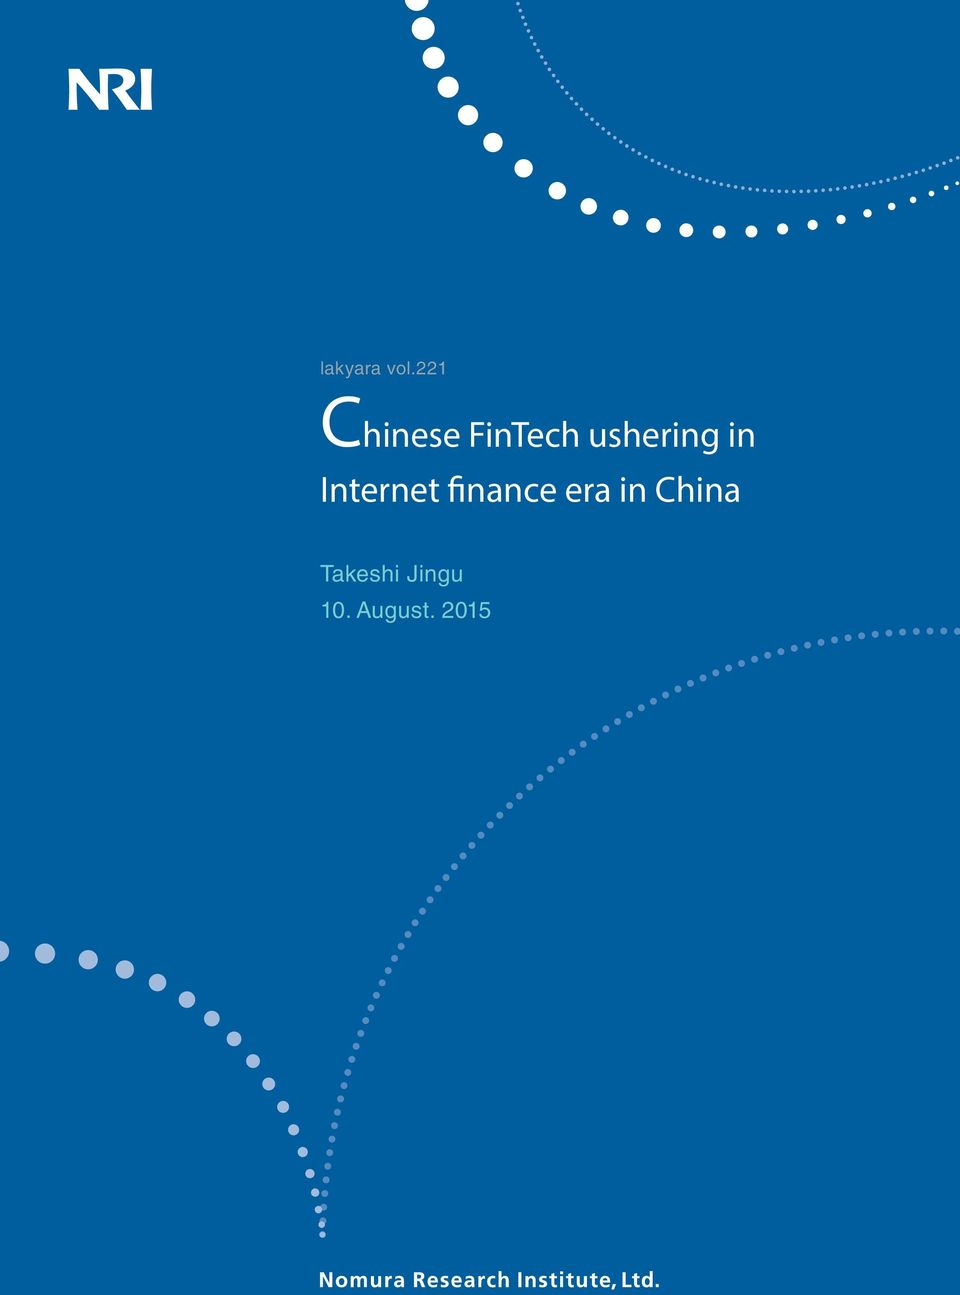 finance era in China